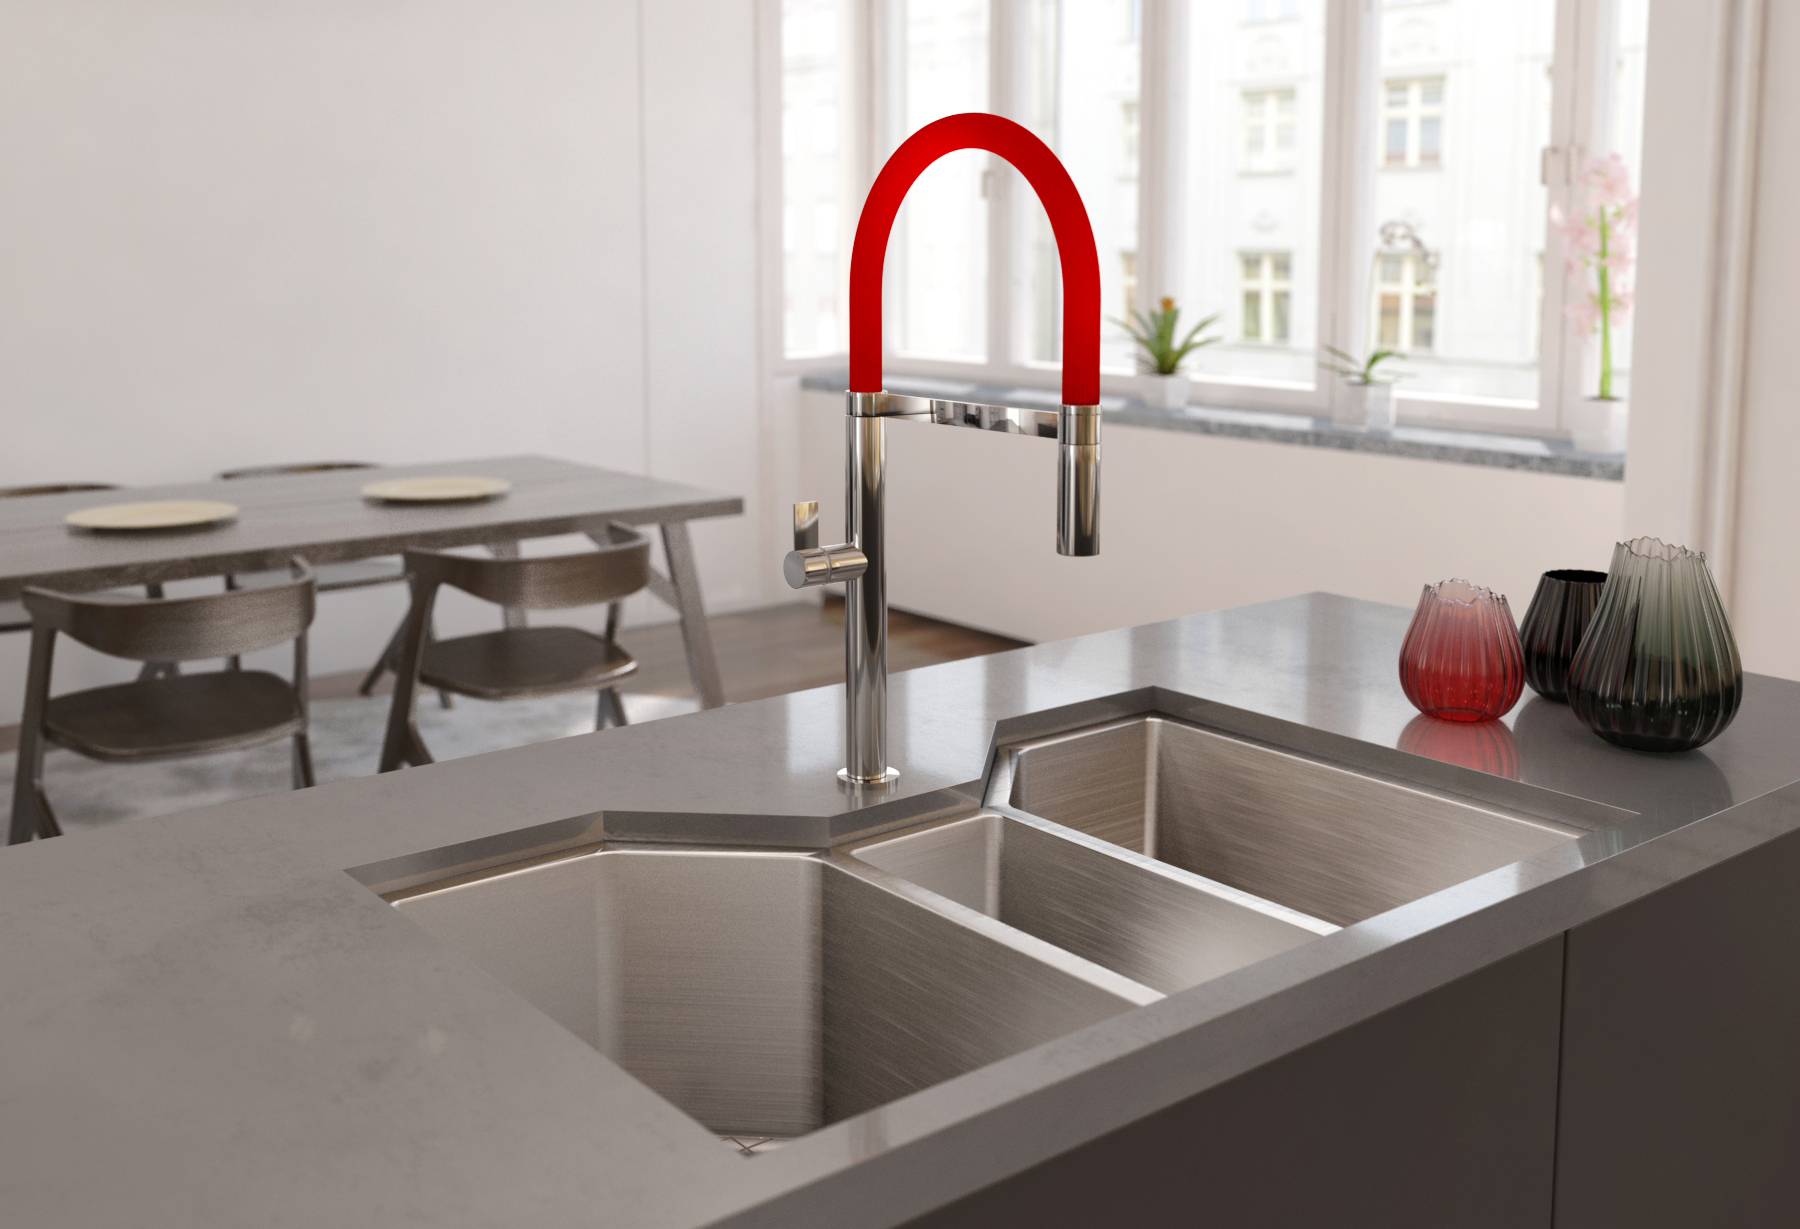 Restaurant Style Kitchen Faucet, Red, Photo Courtesy Ruvati